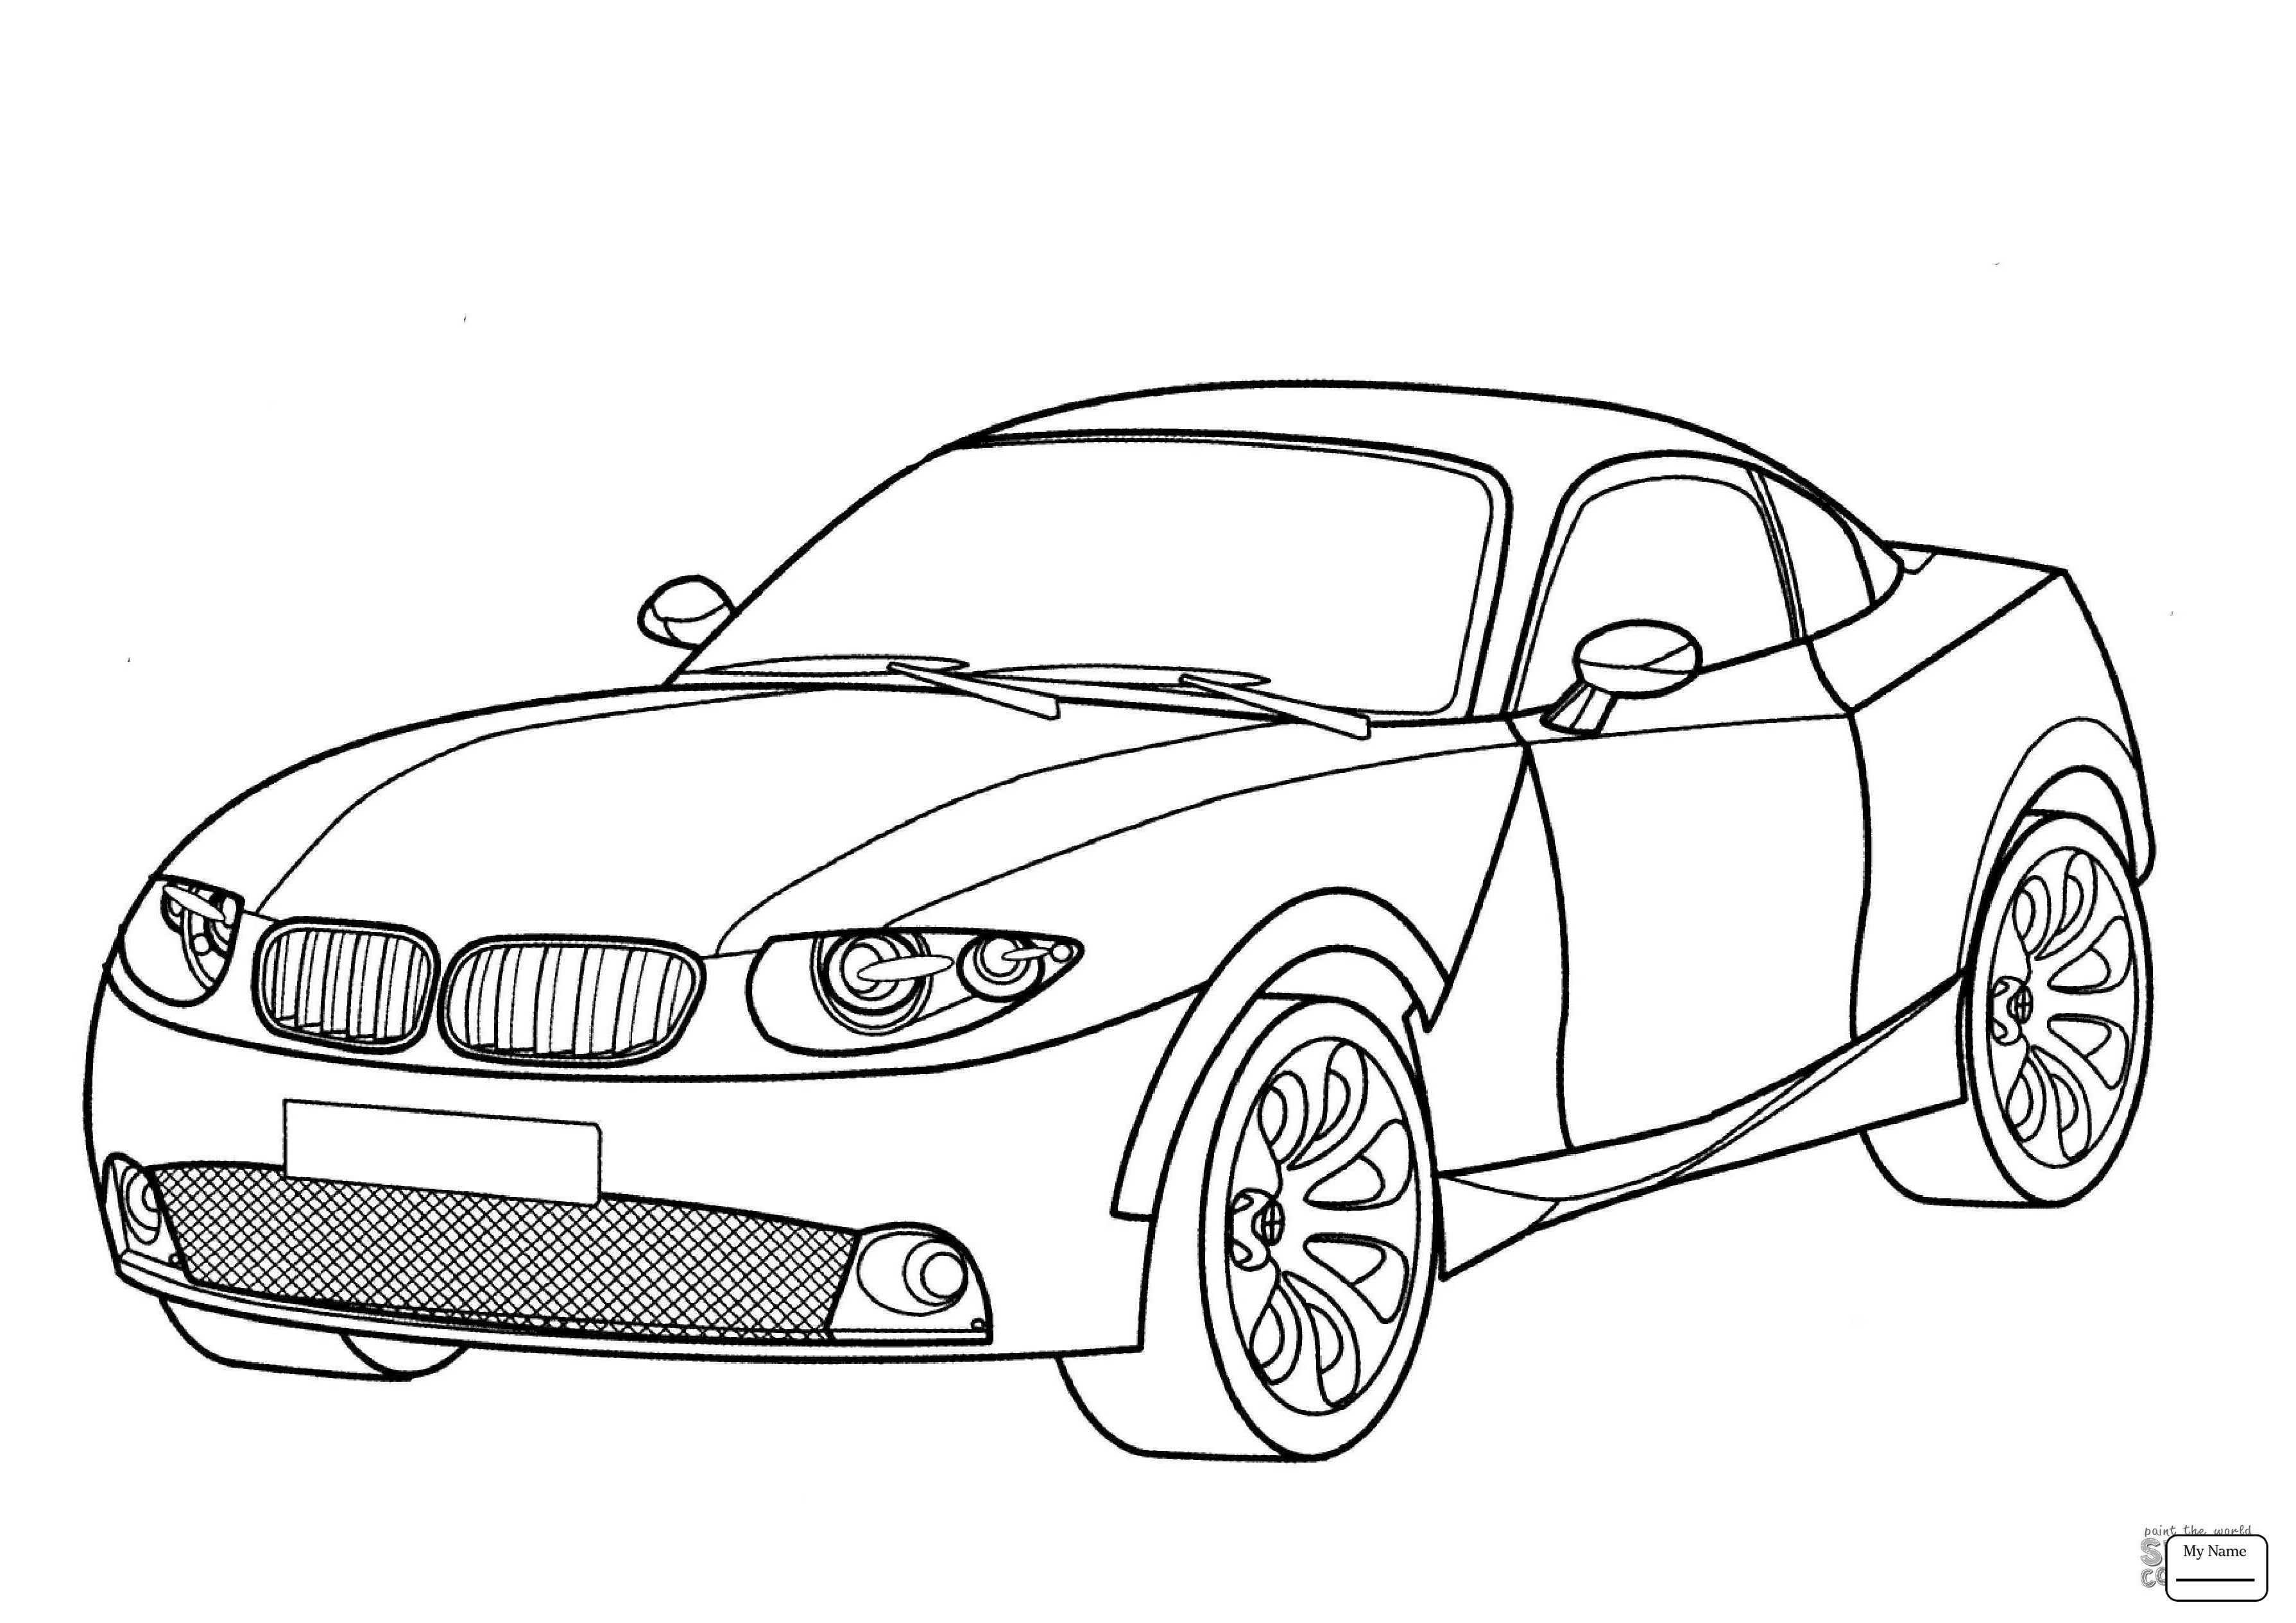 3578x2530 Super Car Bmw 750il Coloring Page For Kids Beautiful Bmw Car